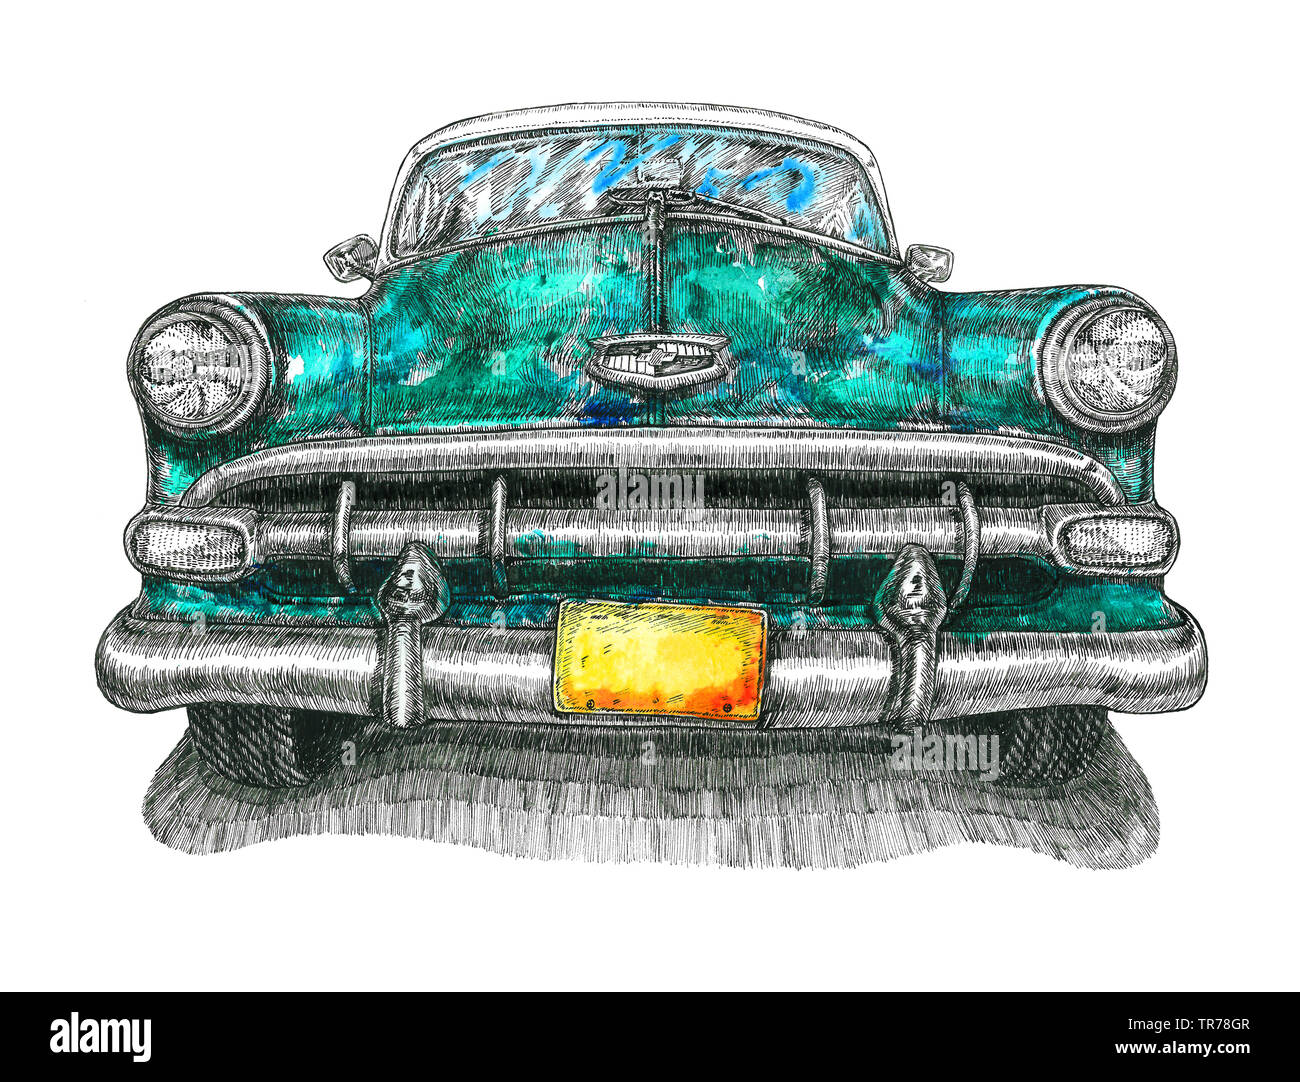 Turquoise Chevrolet Bel Air front view, mixed media, watercolor illustration with ink  drawing, isolated on white background - Stock Image